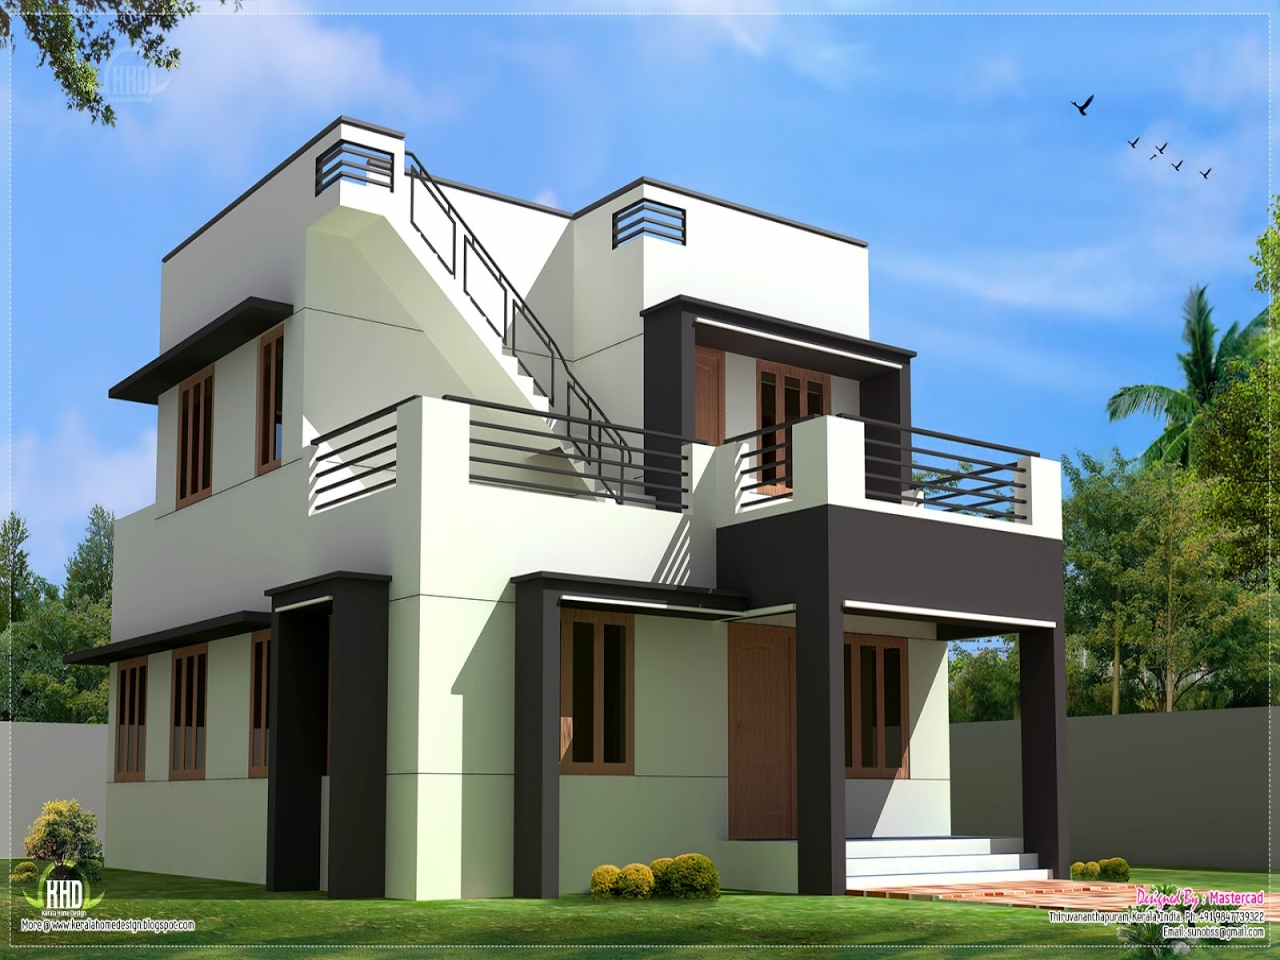 Collection 50 beautiful narrow house design for a 2 story for Beautiful house design